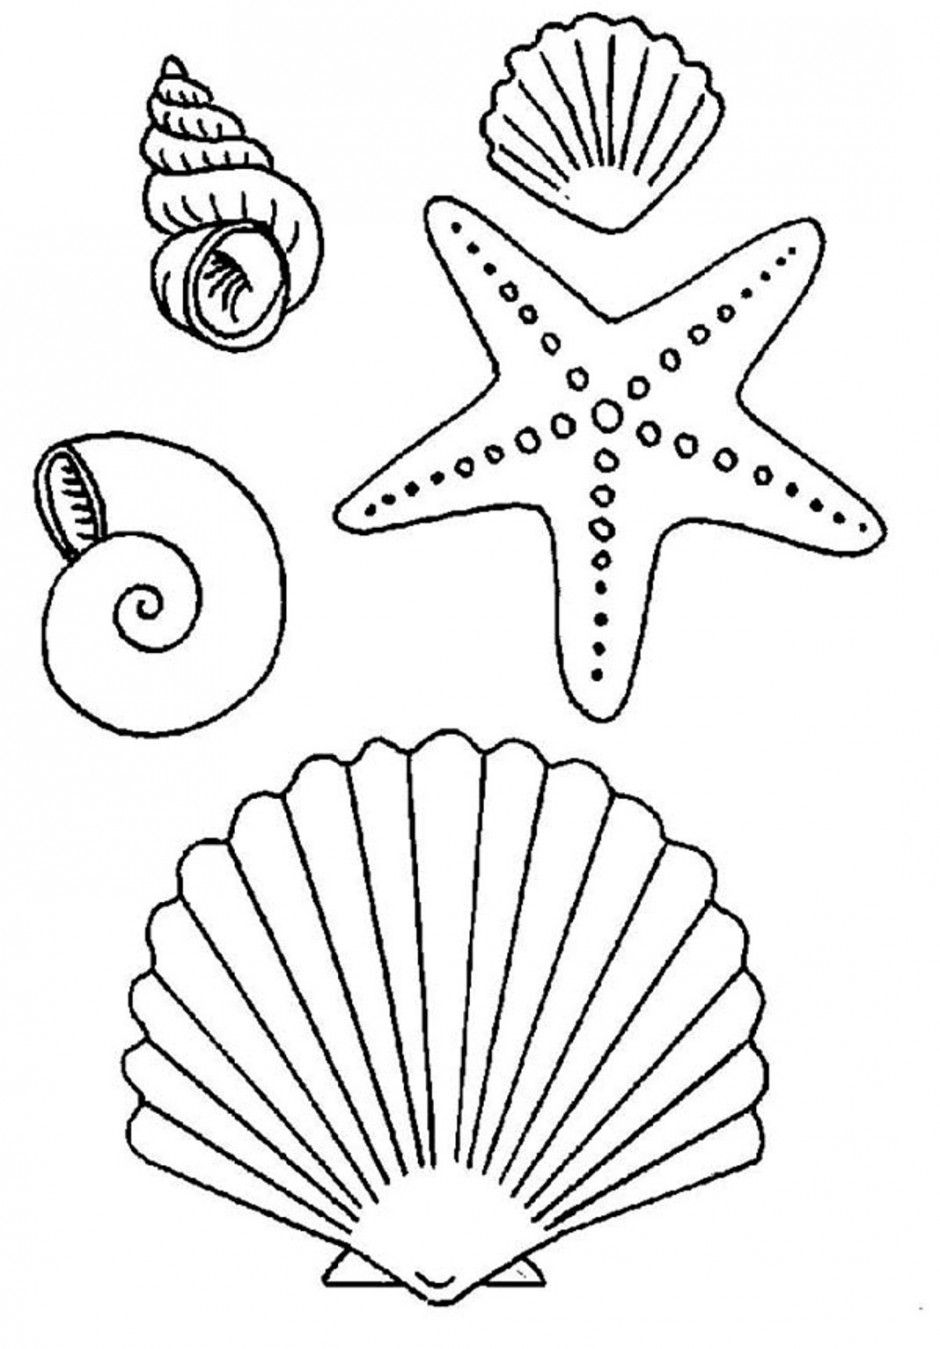 sea star coloring page free printable starfish coloring pages for kids coloring page star sea